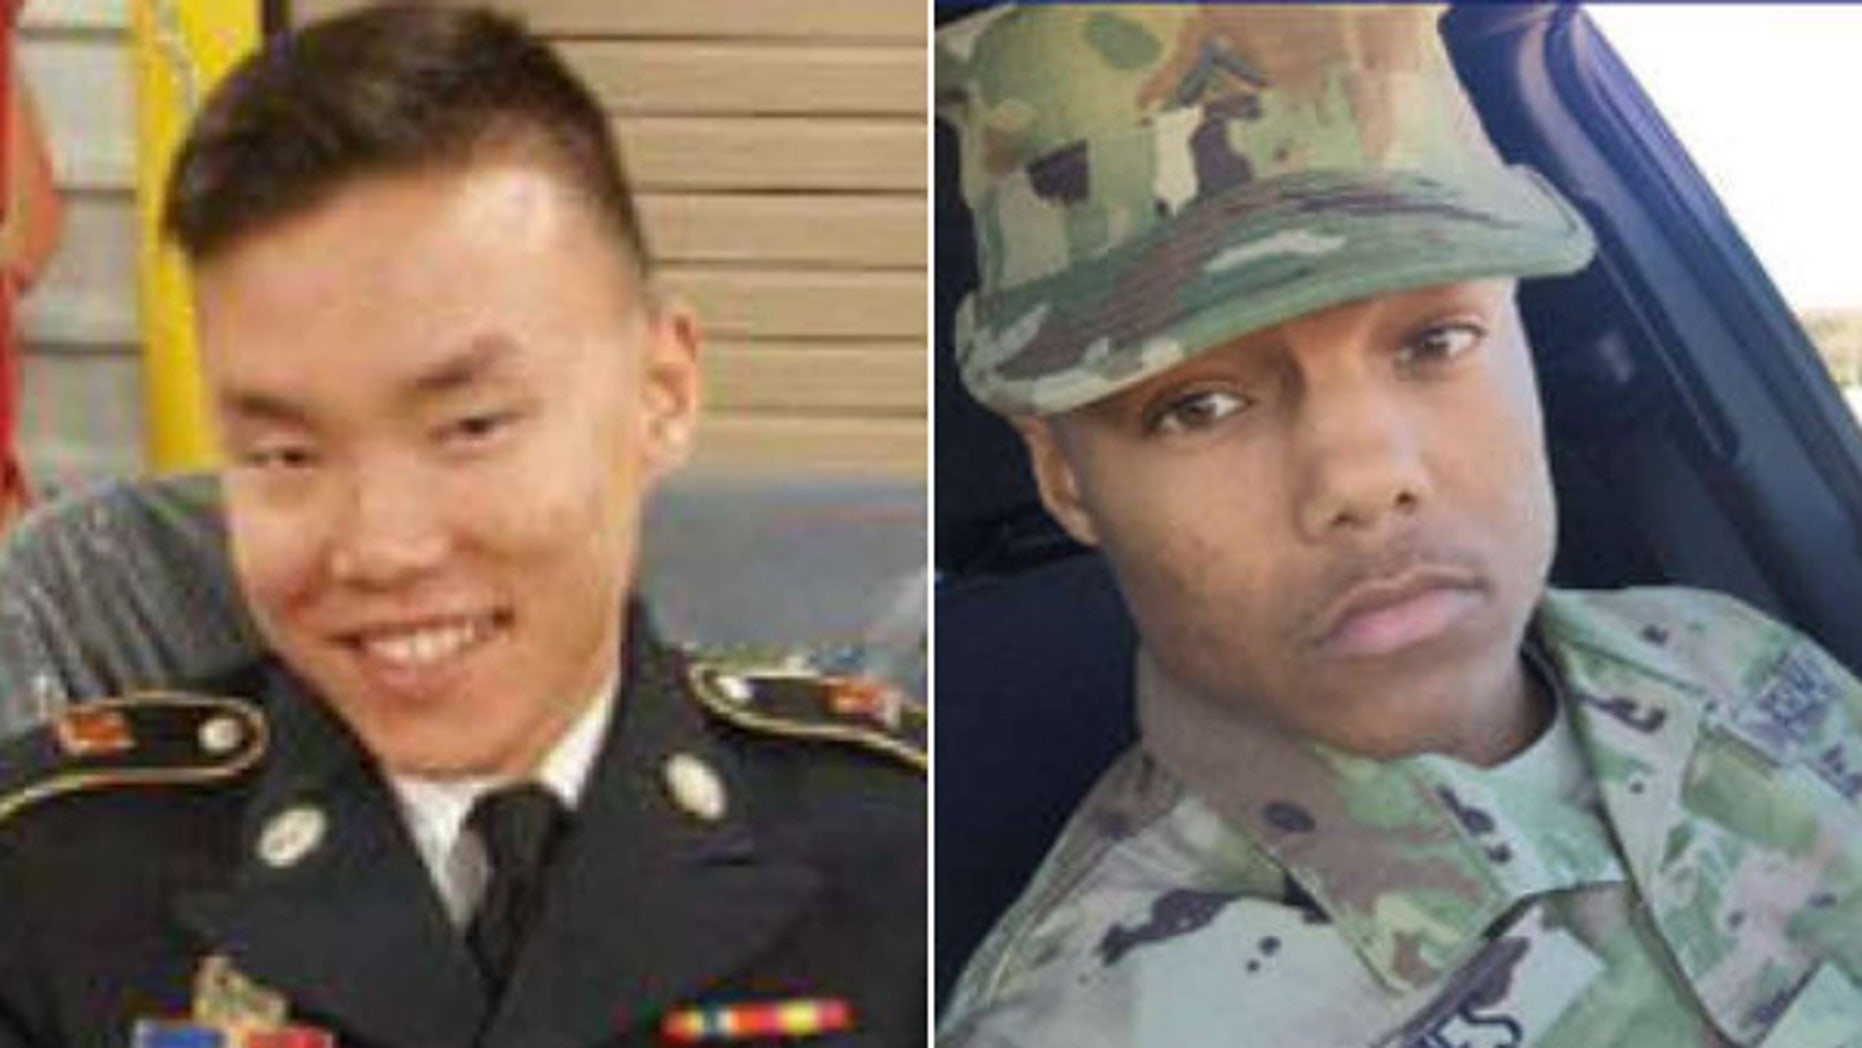 Fort Bliss soldiers Jake Obad-Mathis and Melvin Jones disappeared Dec. 19. (U.S. Army)